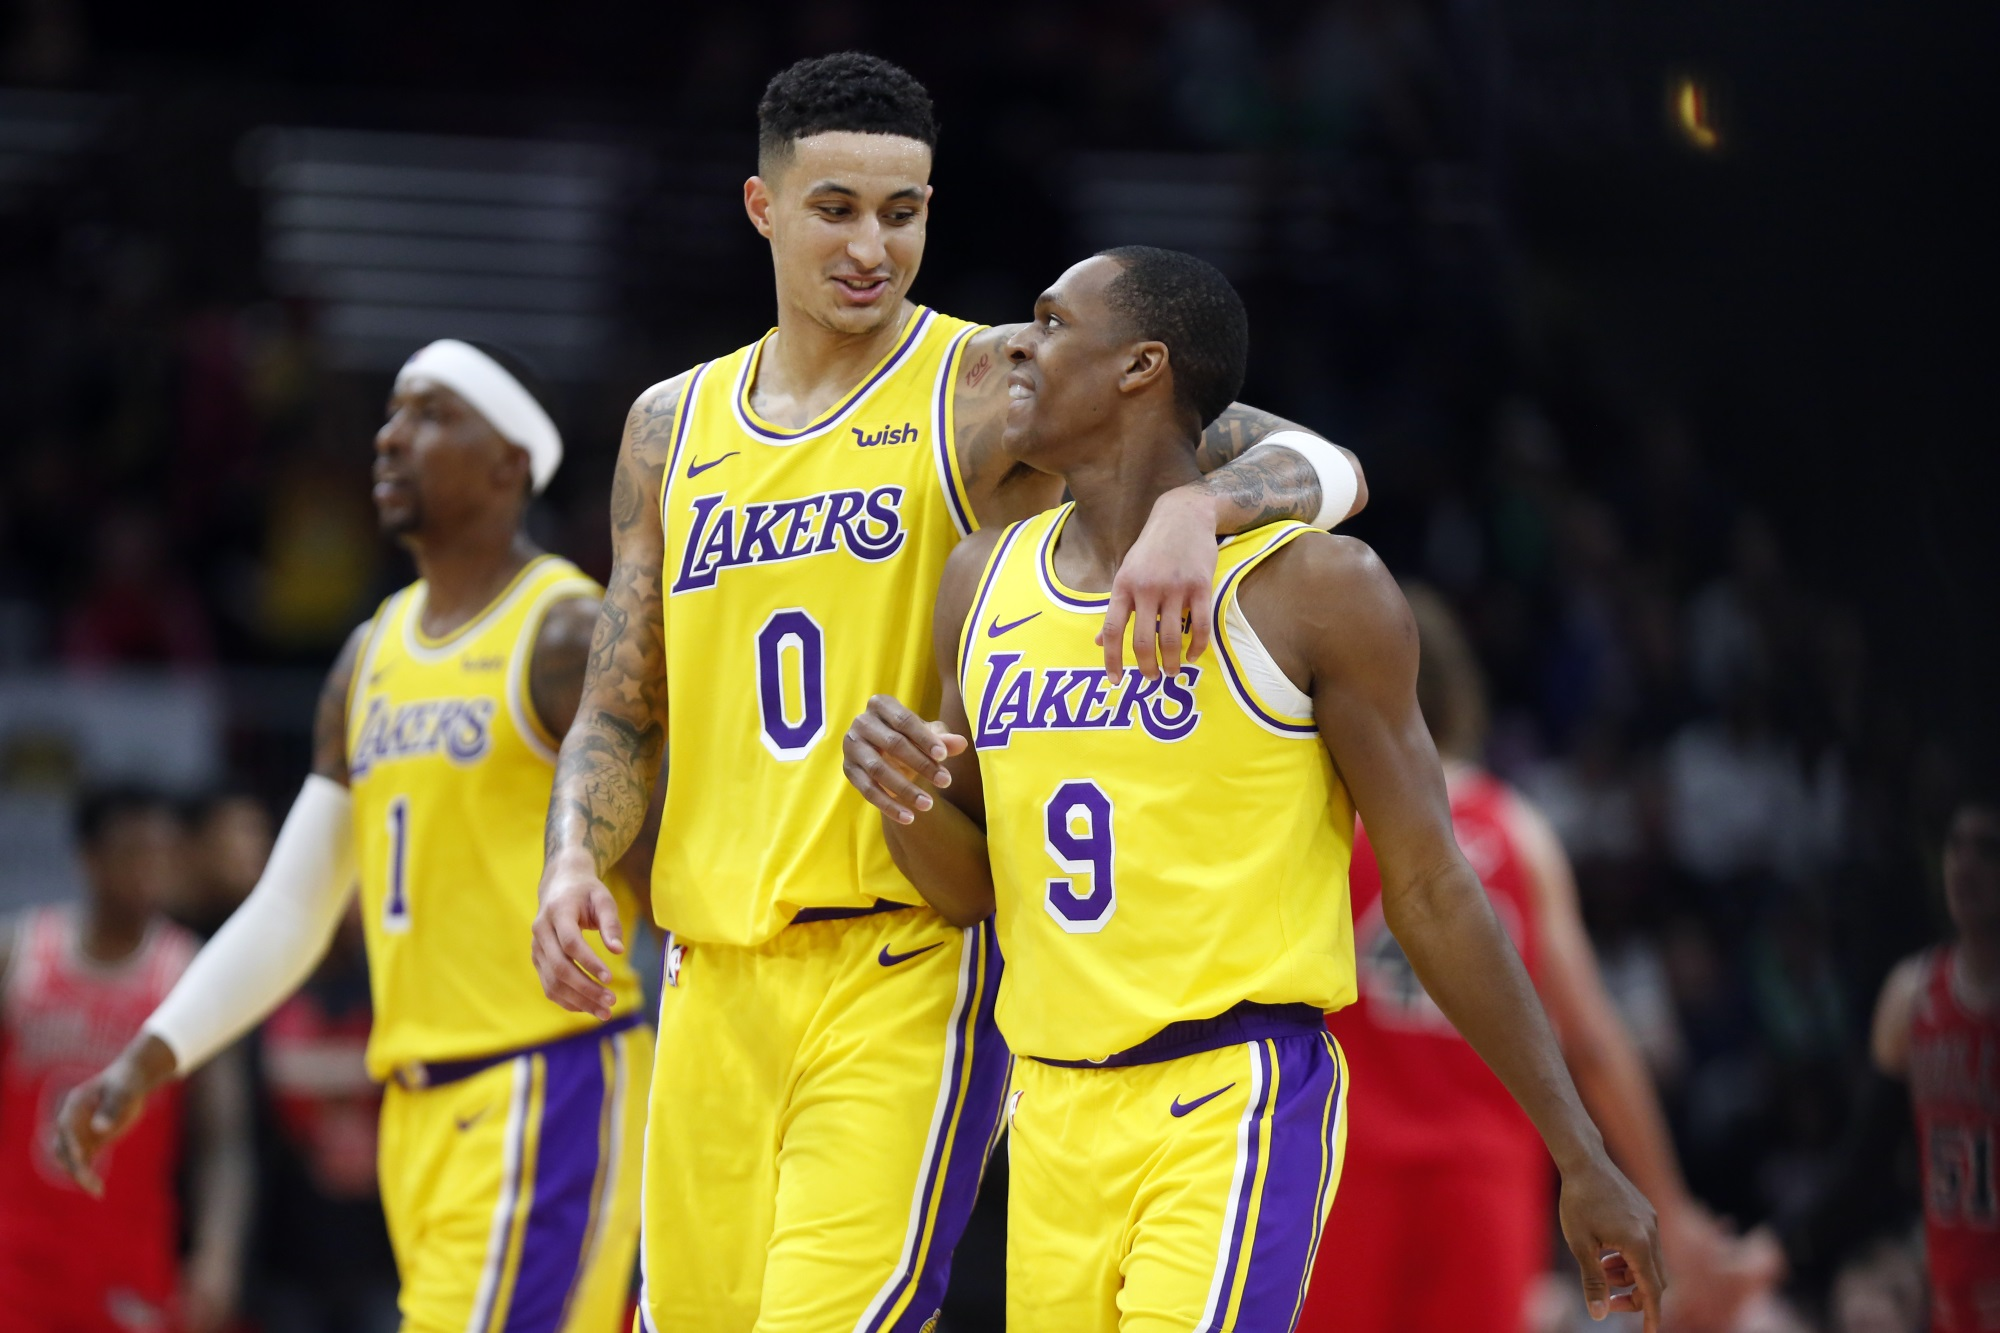 Kyle Kuzma and Rajon Rondo, Los Angeles Lakers vs Chicago Bulls at United Center